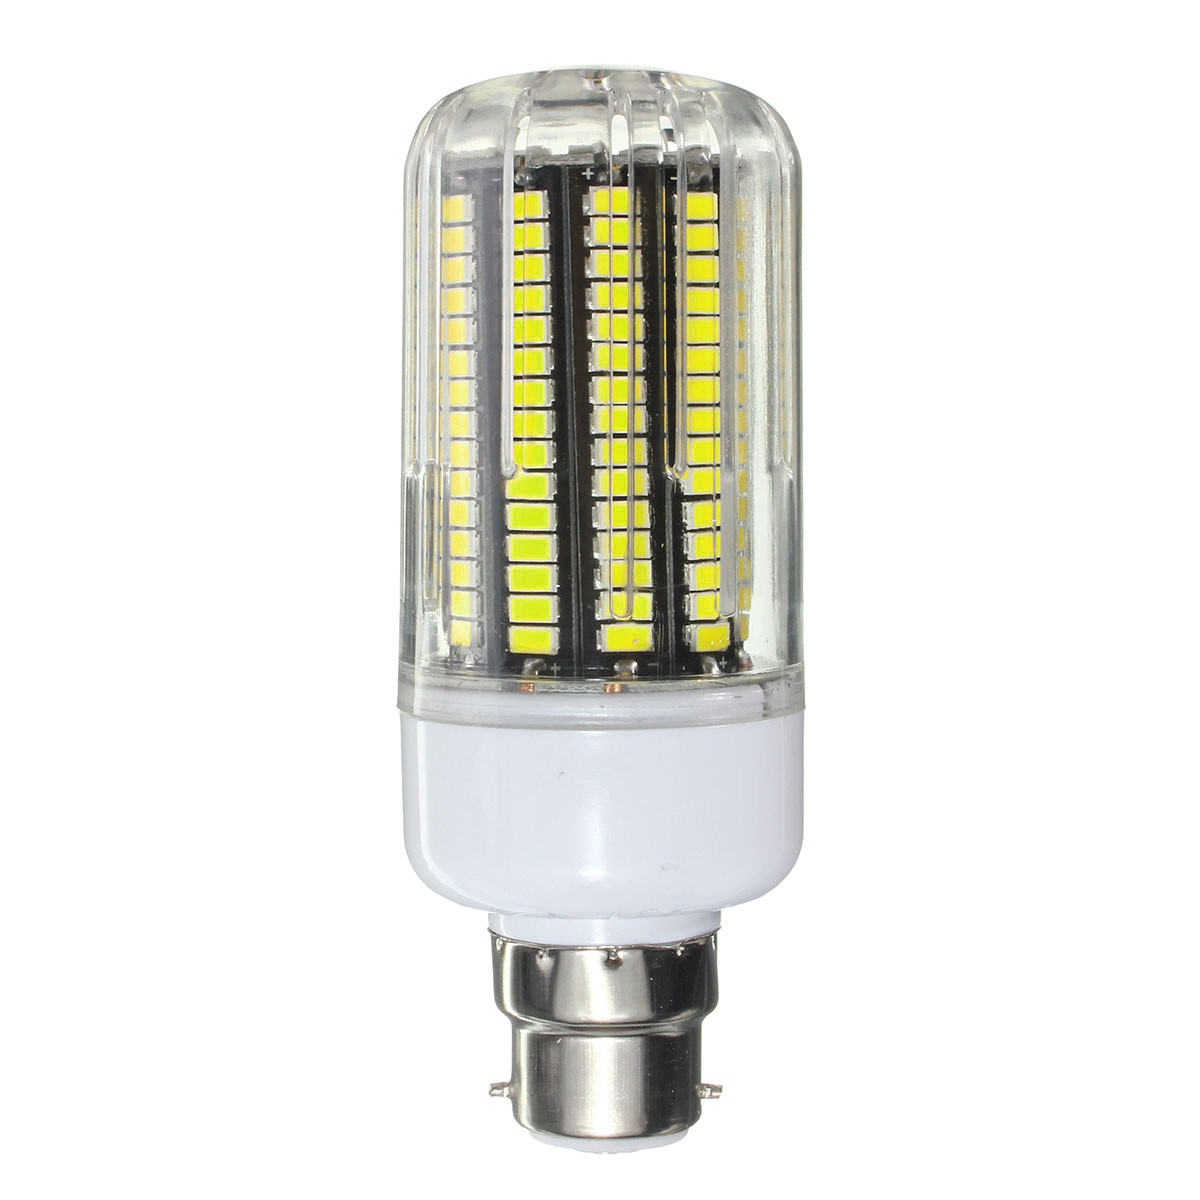 E27 E14 E27 E14 E12 B22 15w 170 Smd 5730 Led 1200lm Pure White